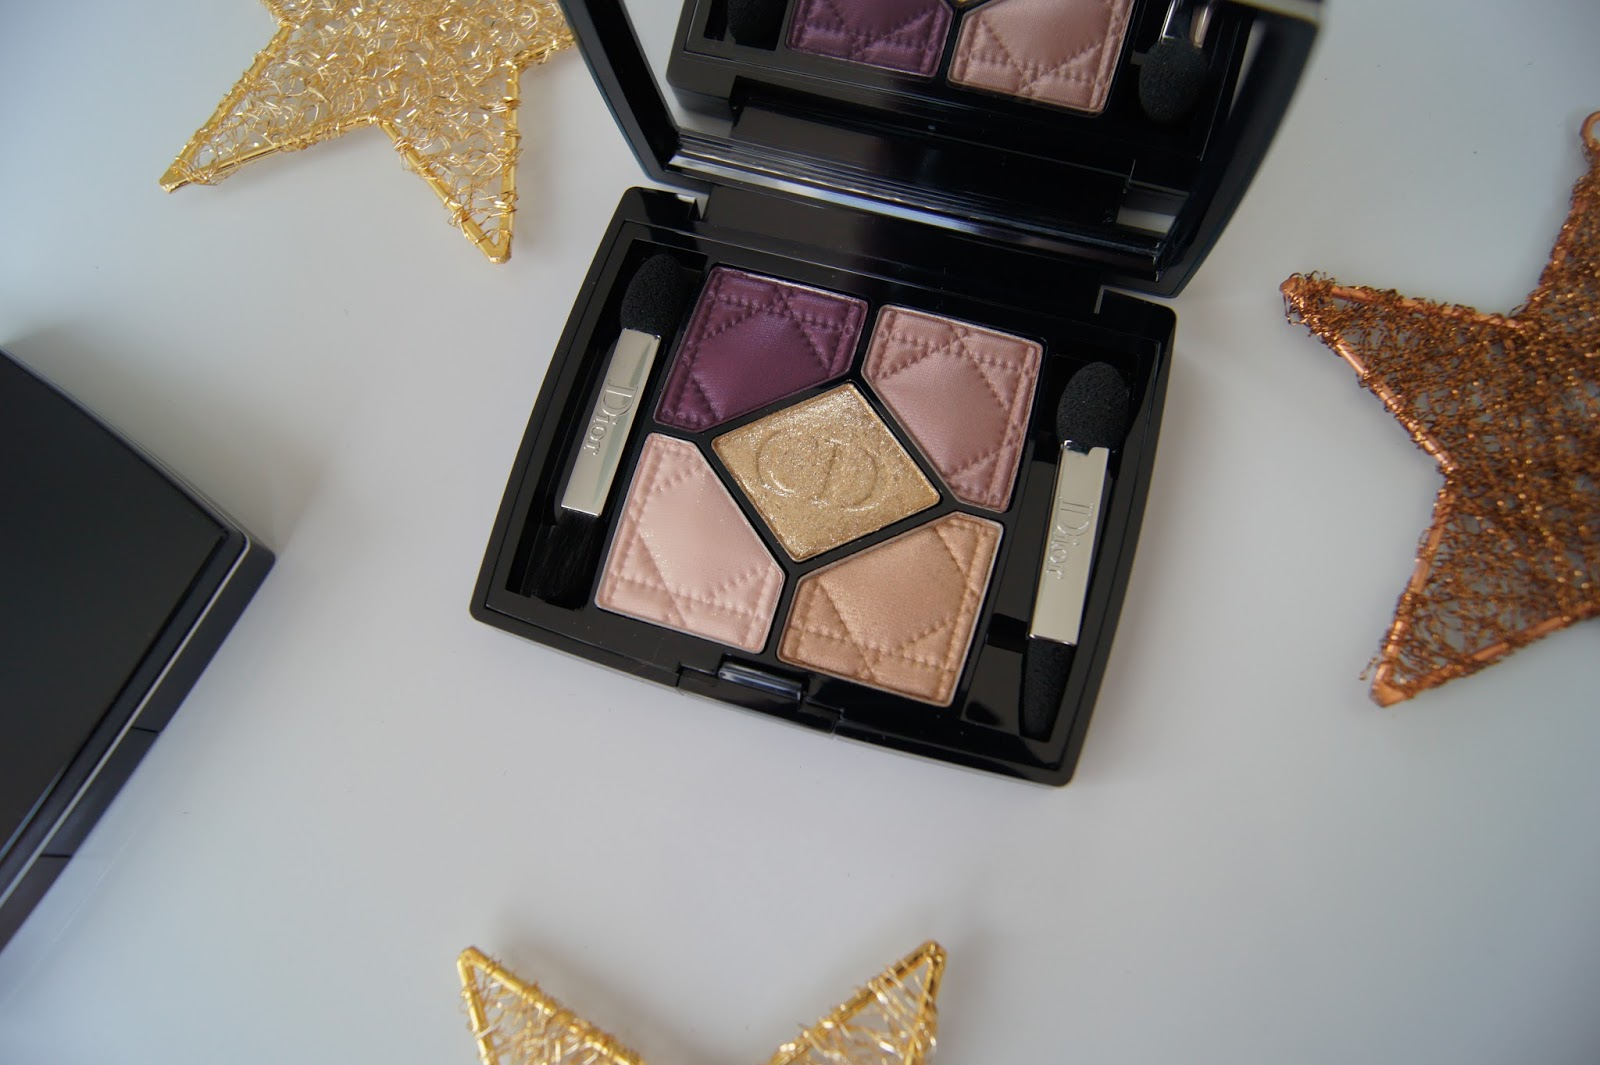 Dior Golden Shock palette